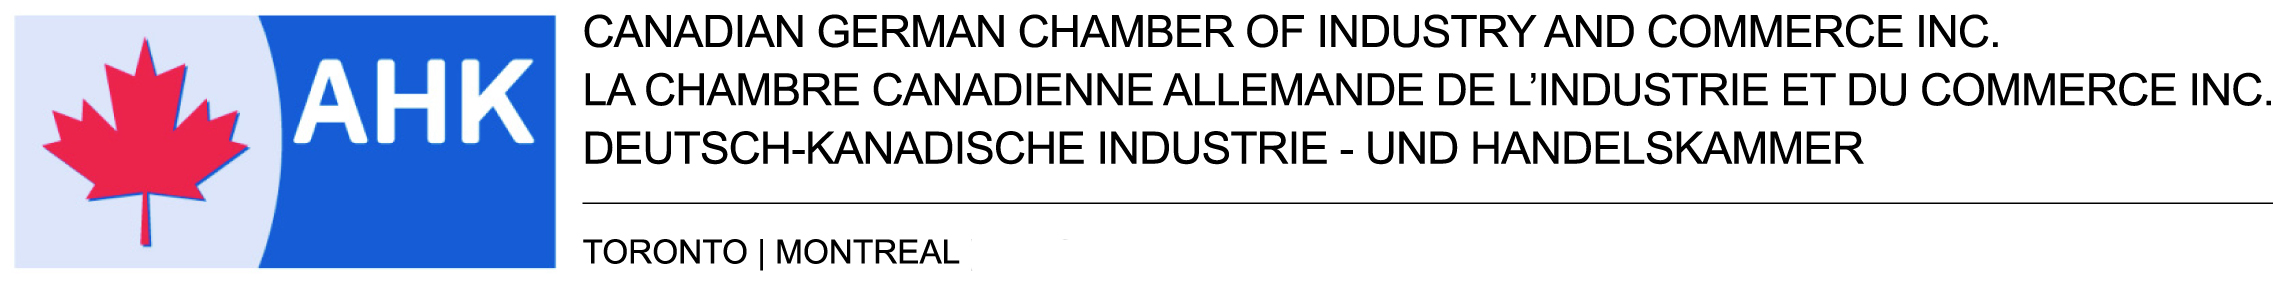 AHK Canadian German Chamber of Industry and Commerce